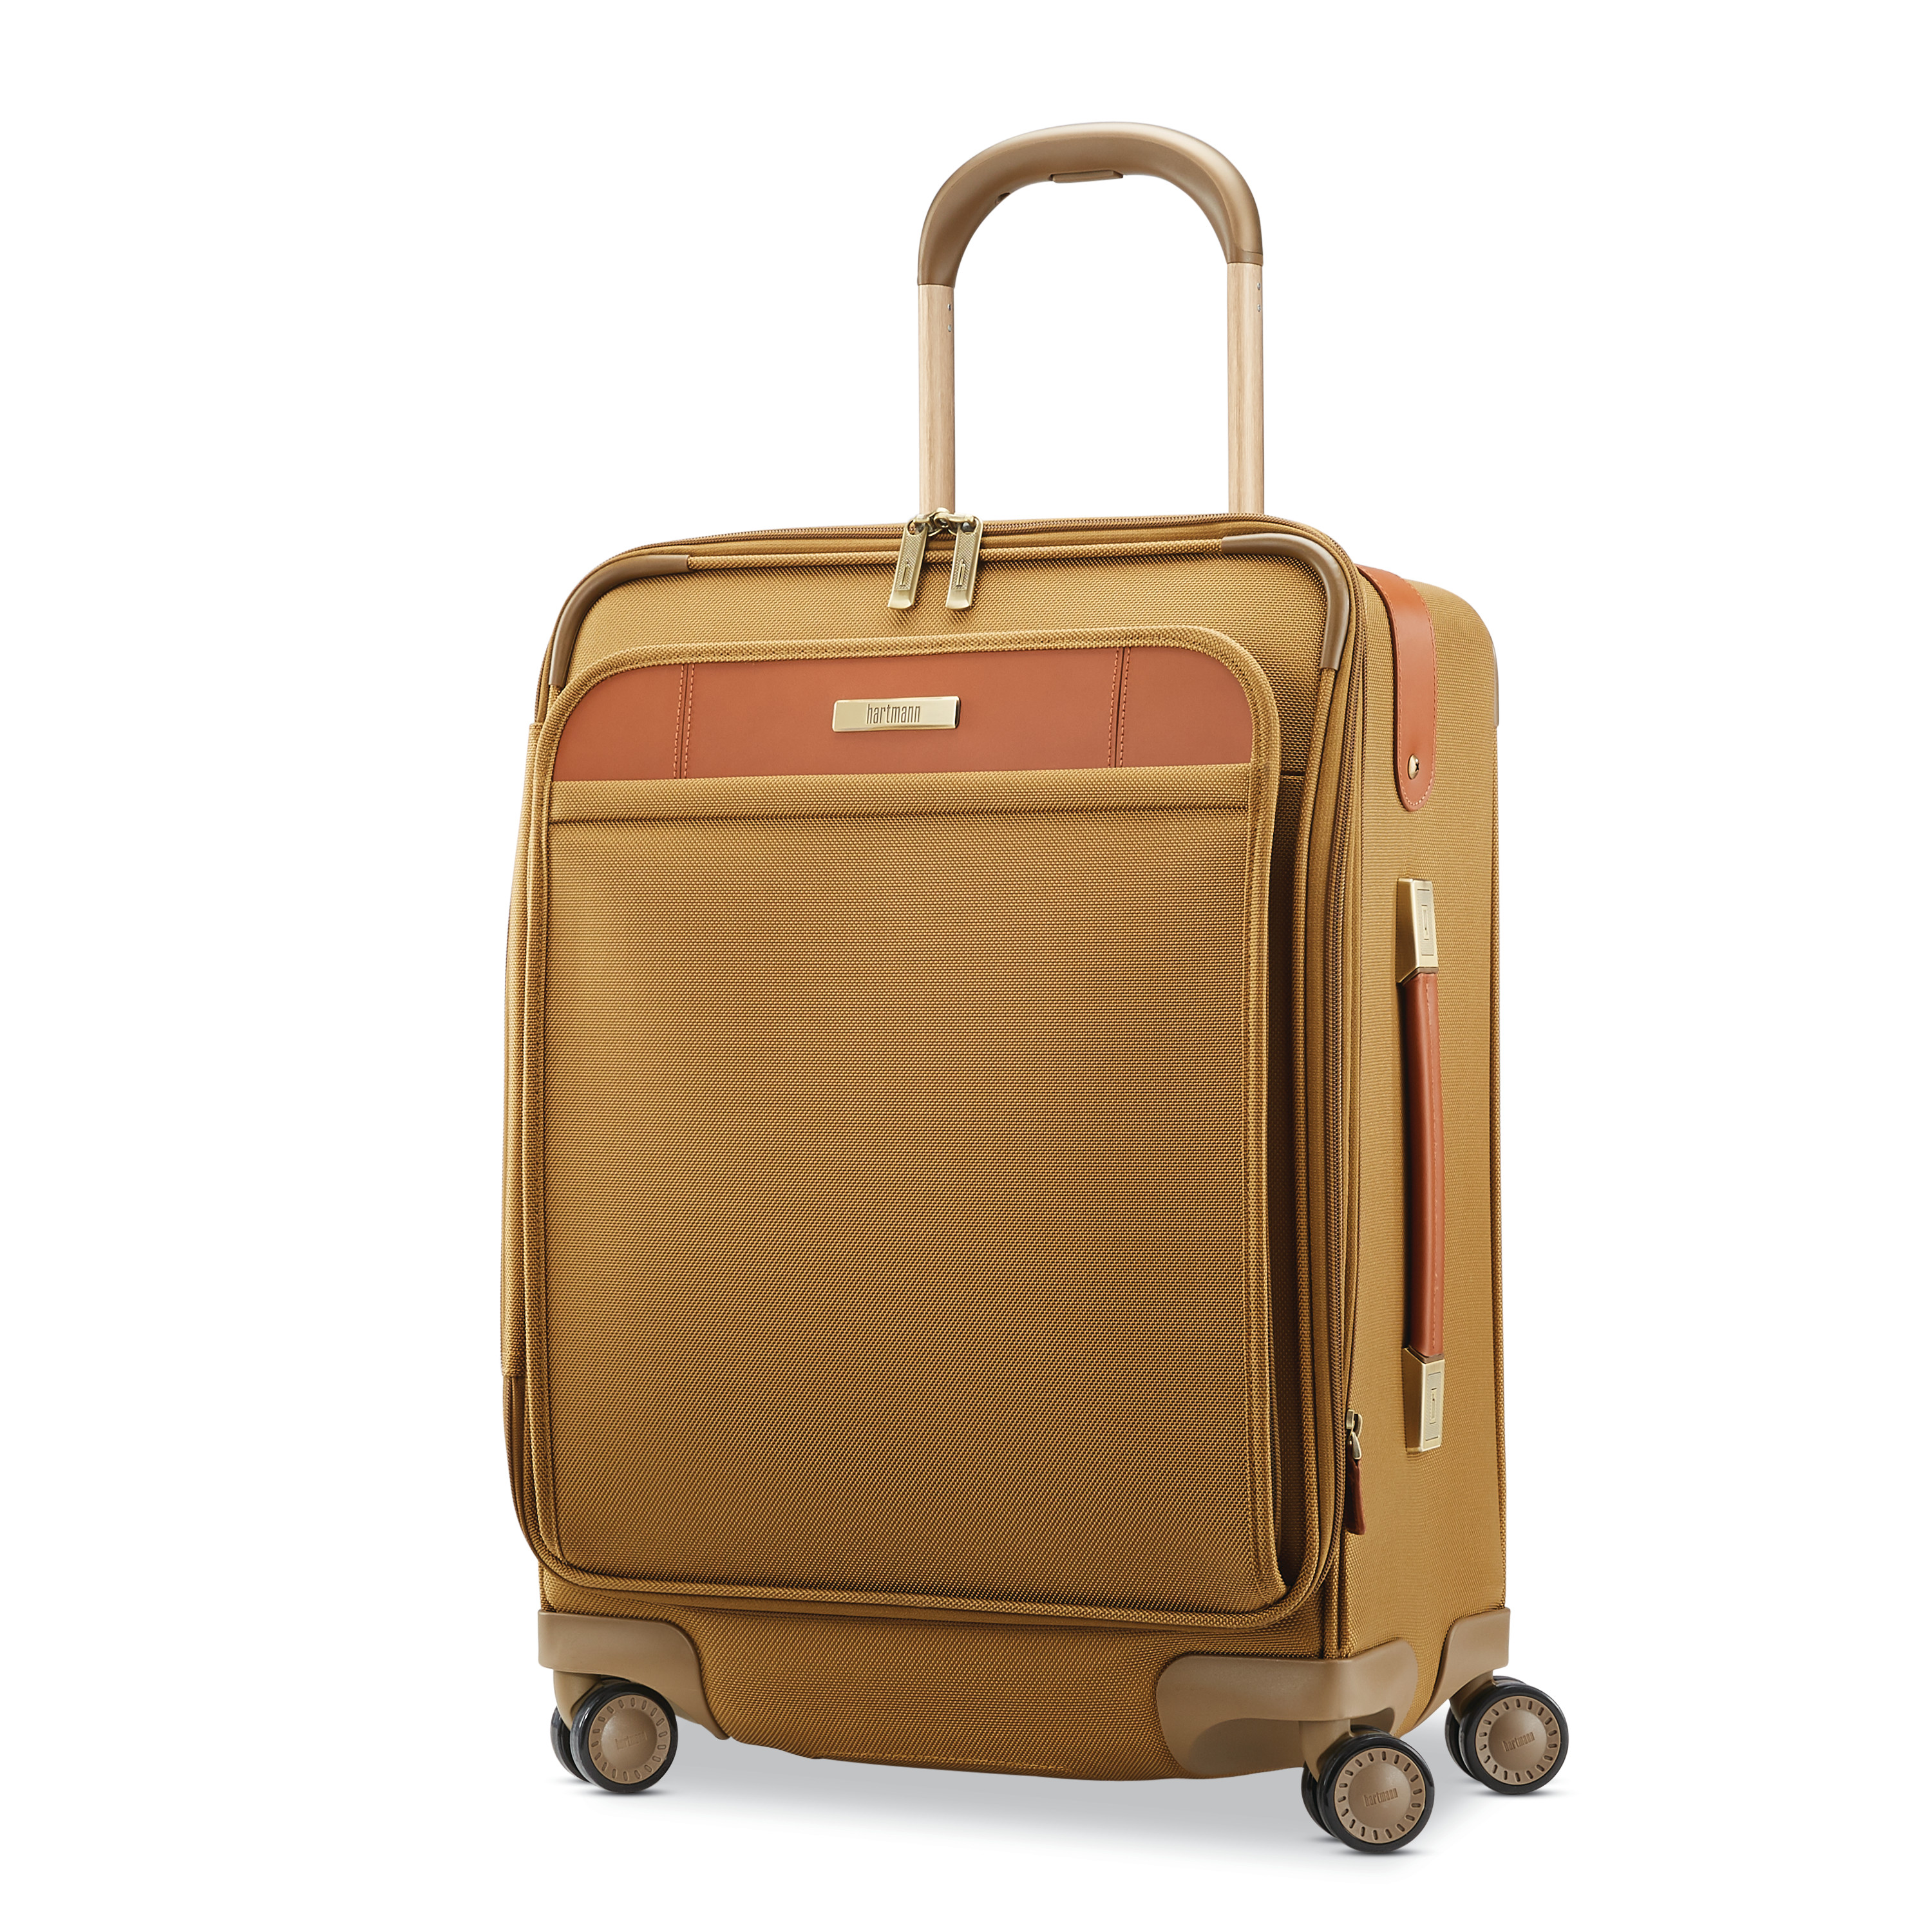 47f65881b3f6 Hartmann Ratio Classic Deluxe 2 Domestic Carry-On Spinner in the color  Safari. Loading zoom. new